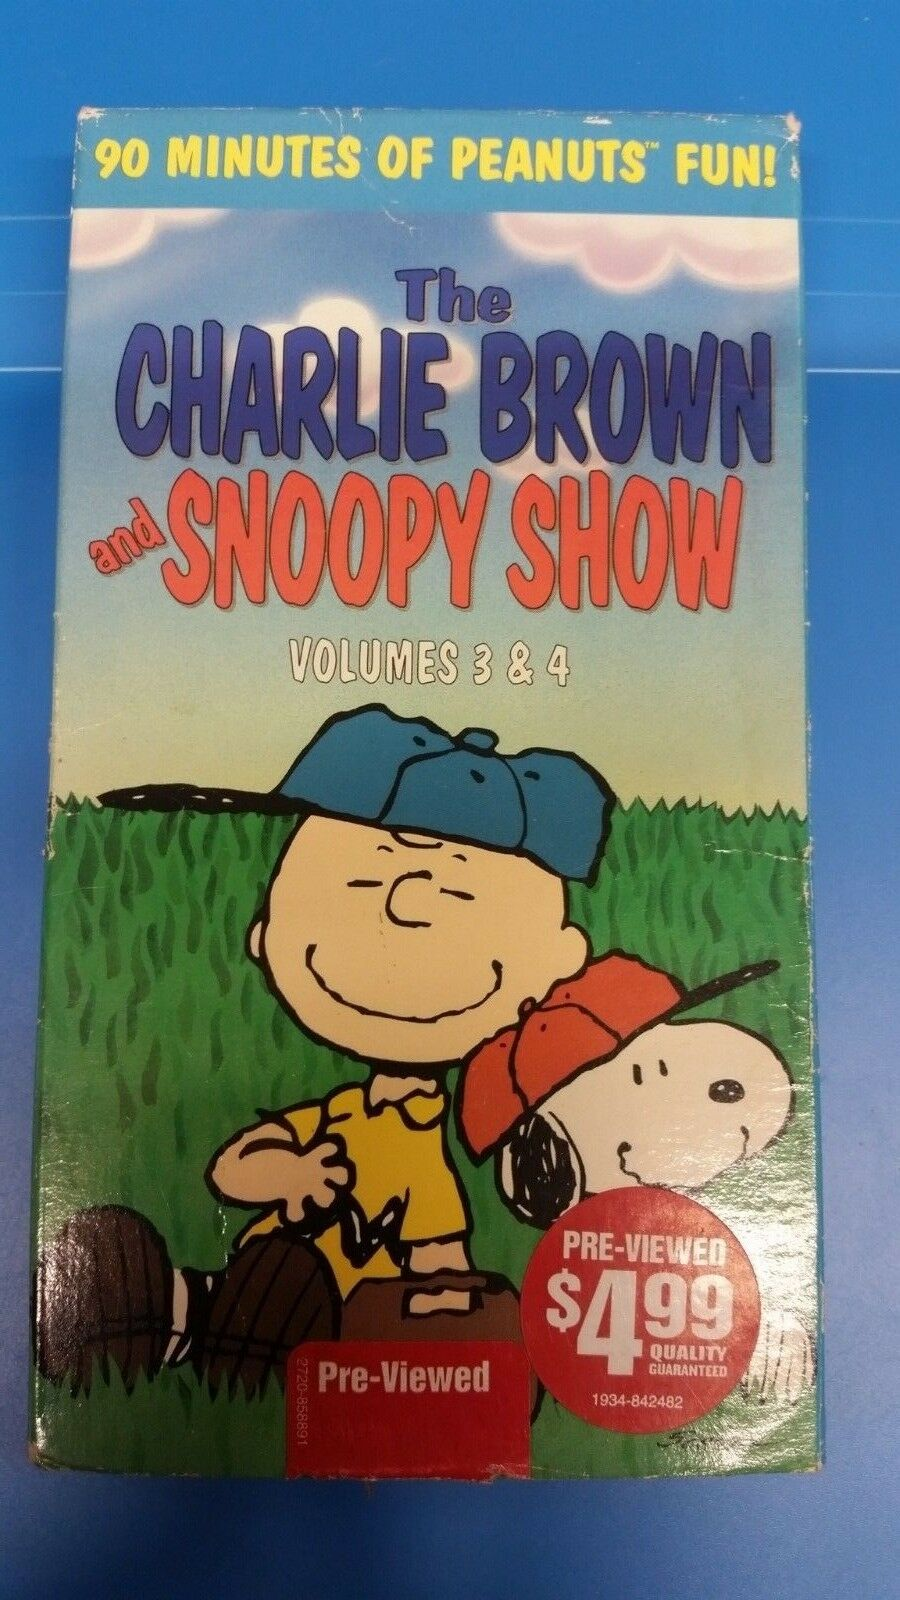 The Charlie Brown and Snoopy Show: Volumes 3 & 4 (1997 VHS)